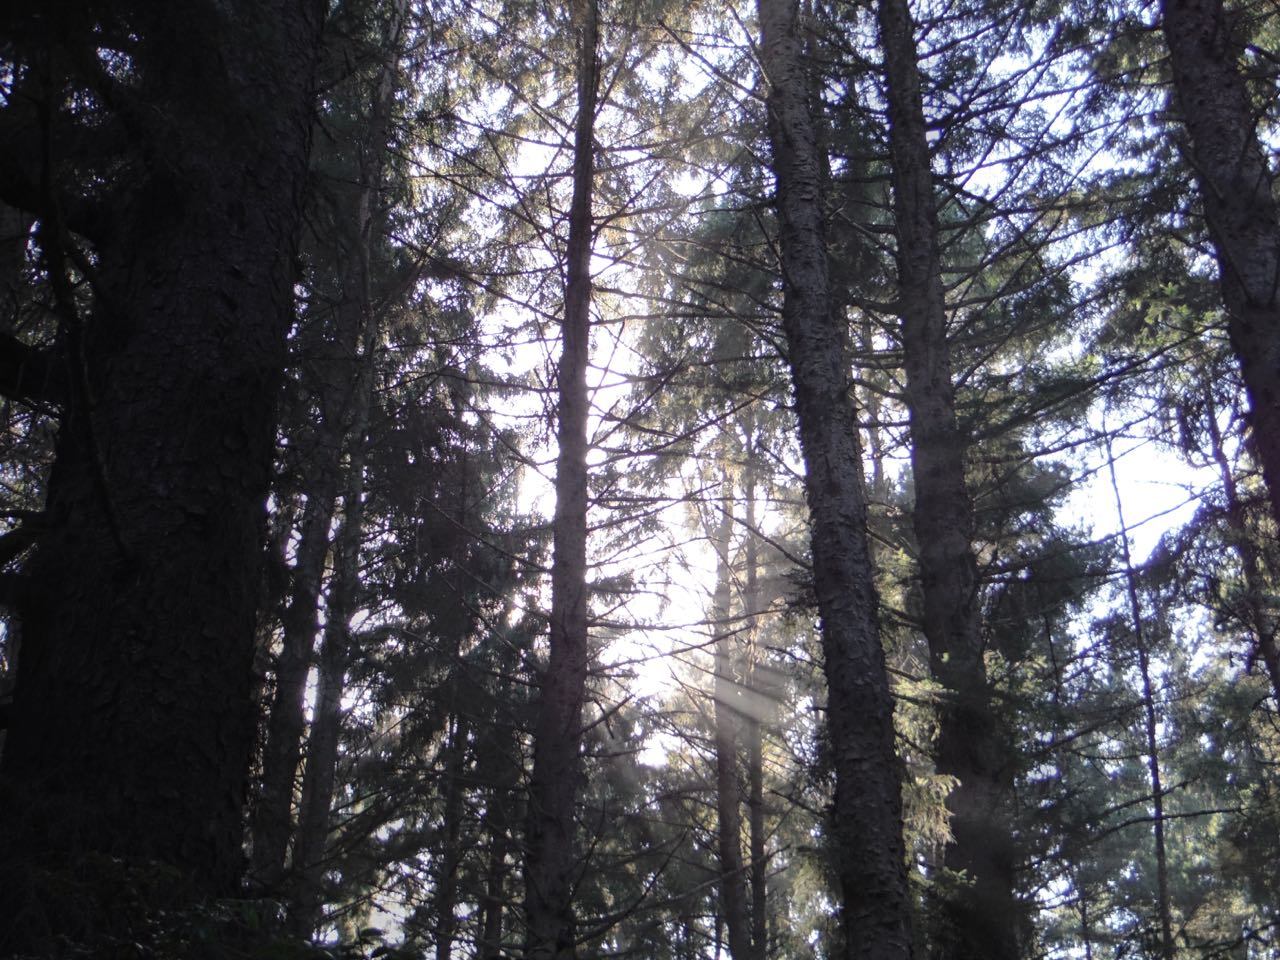 Redwoods 2017 10 08 165 Of 287